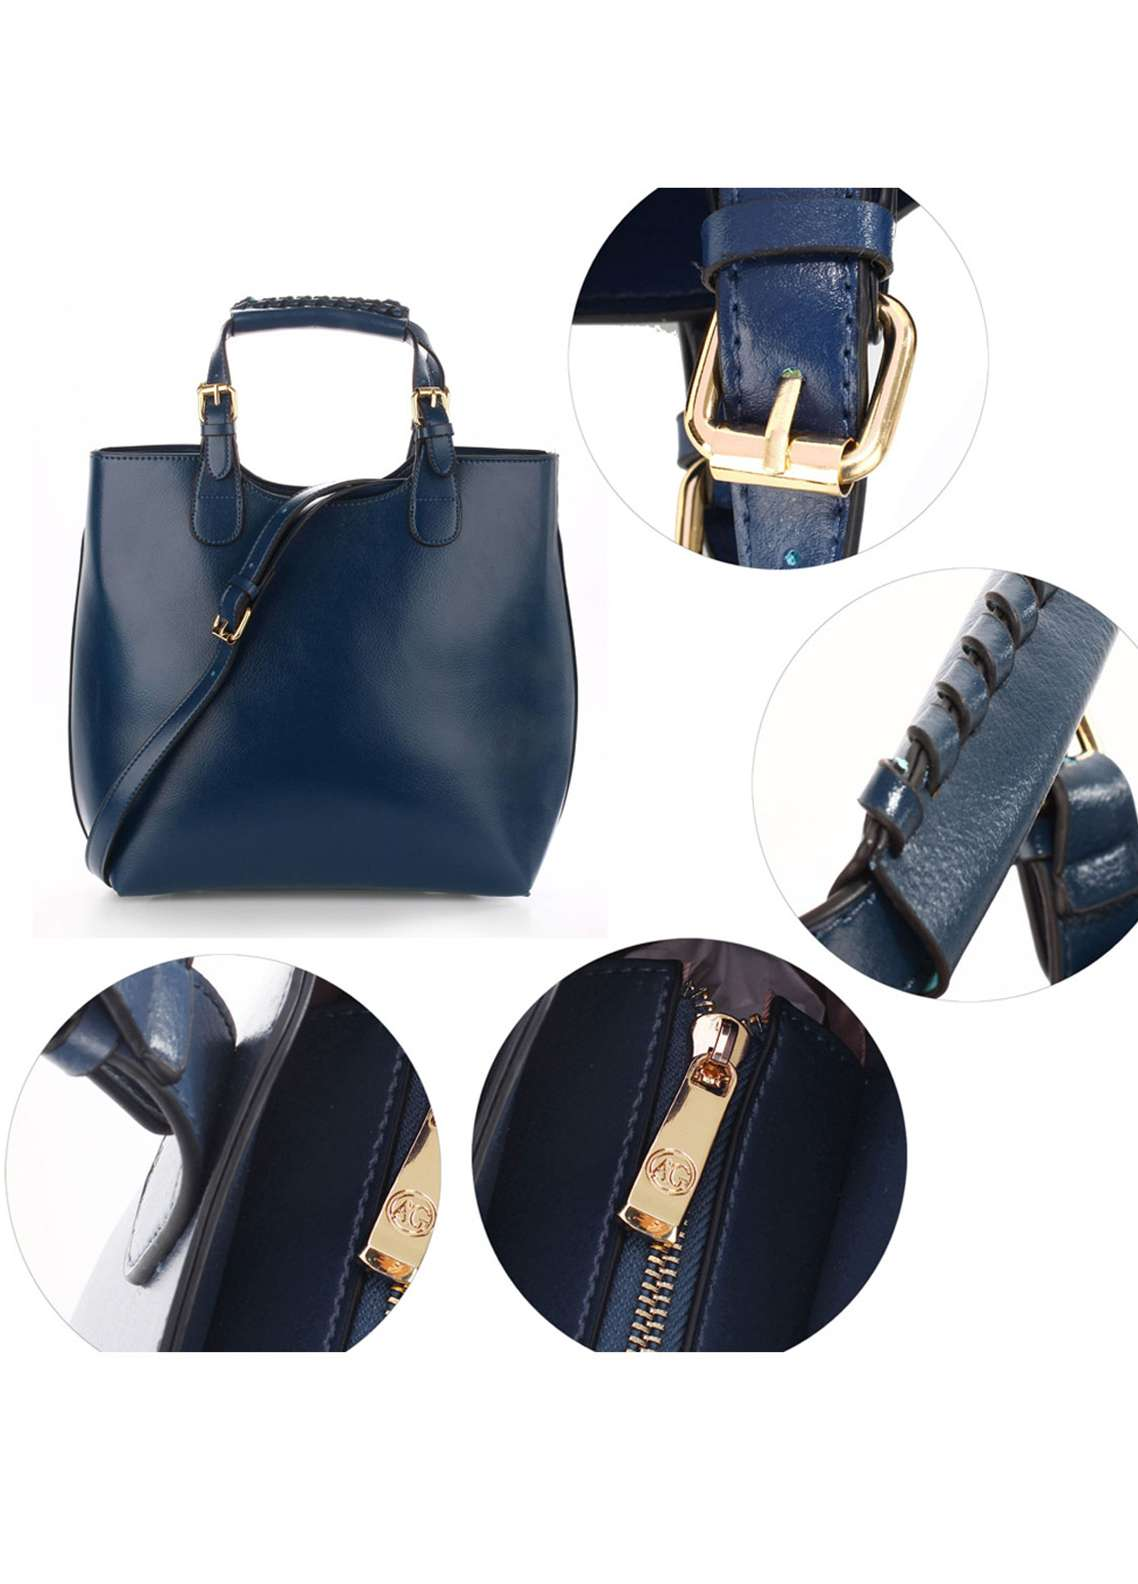 Anna Grace London Hard Faux Leather Shoulder  Bags  for Women  Navy with Plain Texture